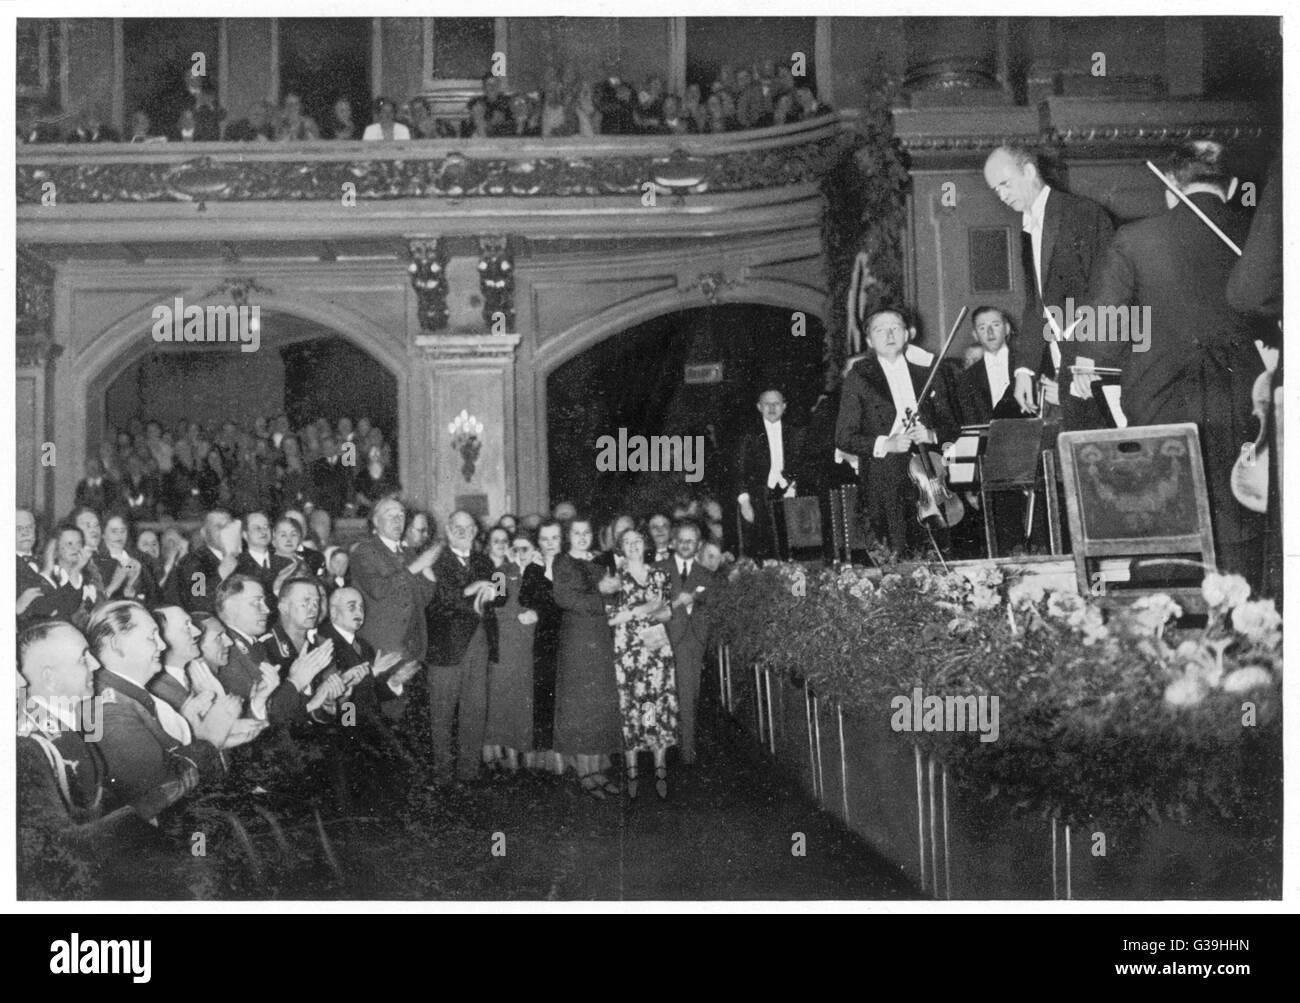 WILHELM FURTWANGLER  (1886 - 1954) German conductor performing with the Berlin Philharmonic Orchestra for Hitler - Stock Image